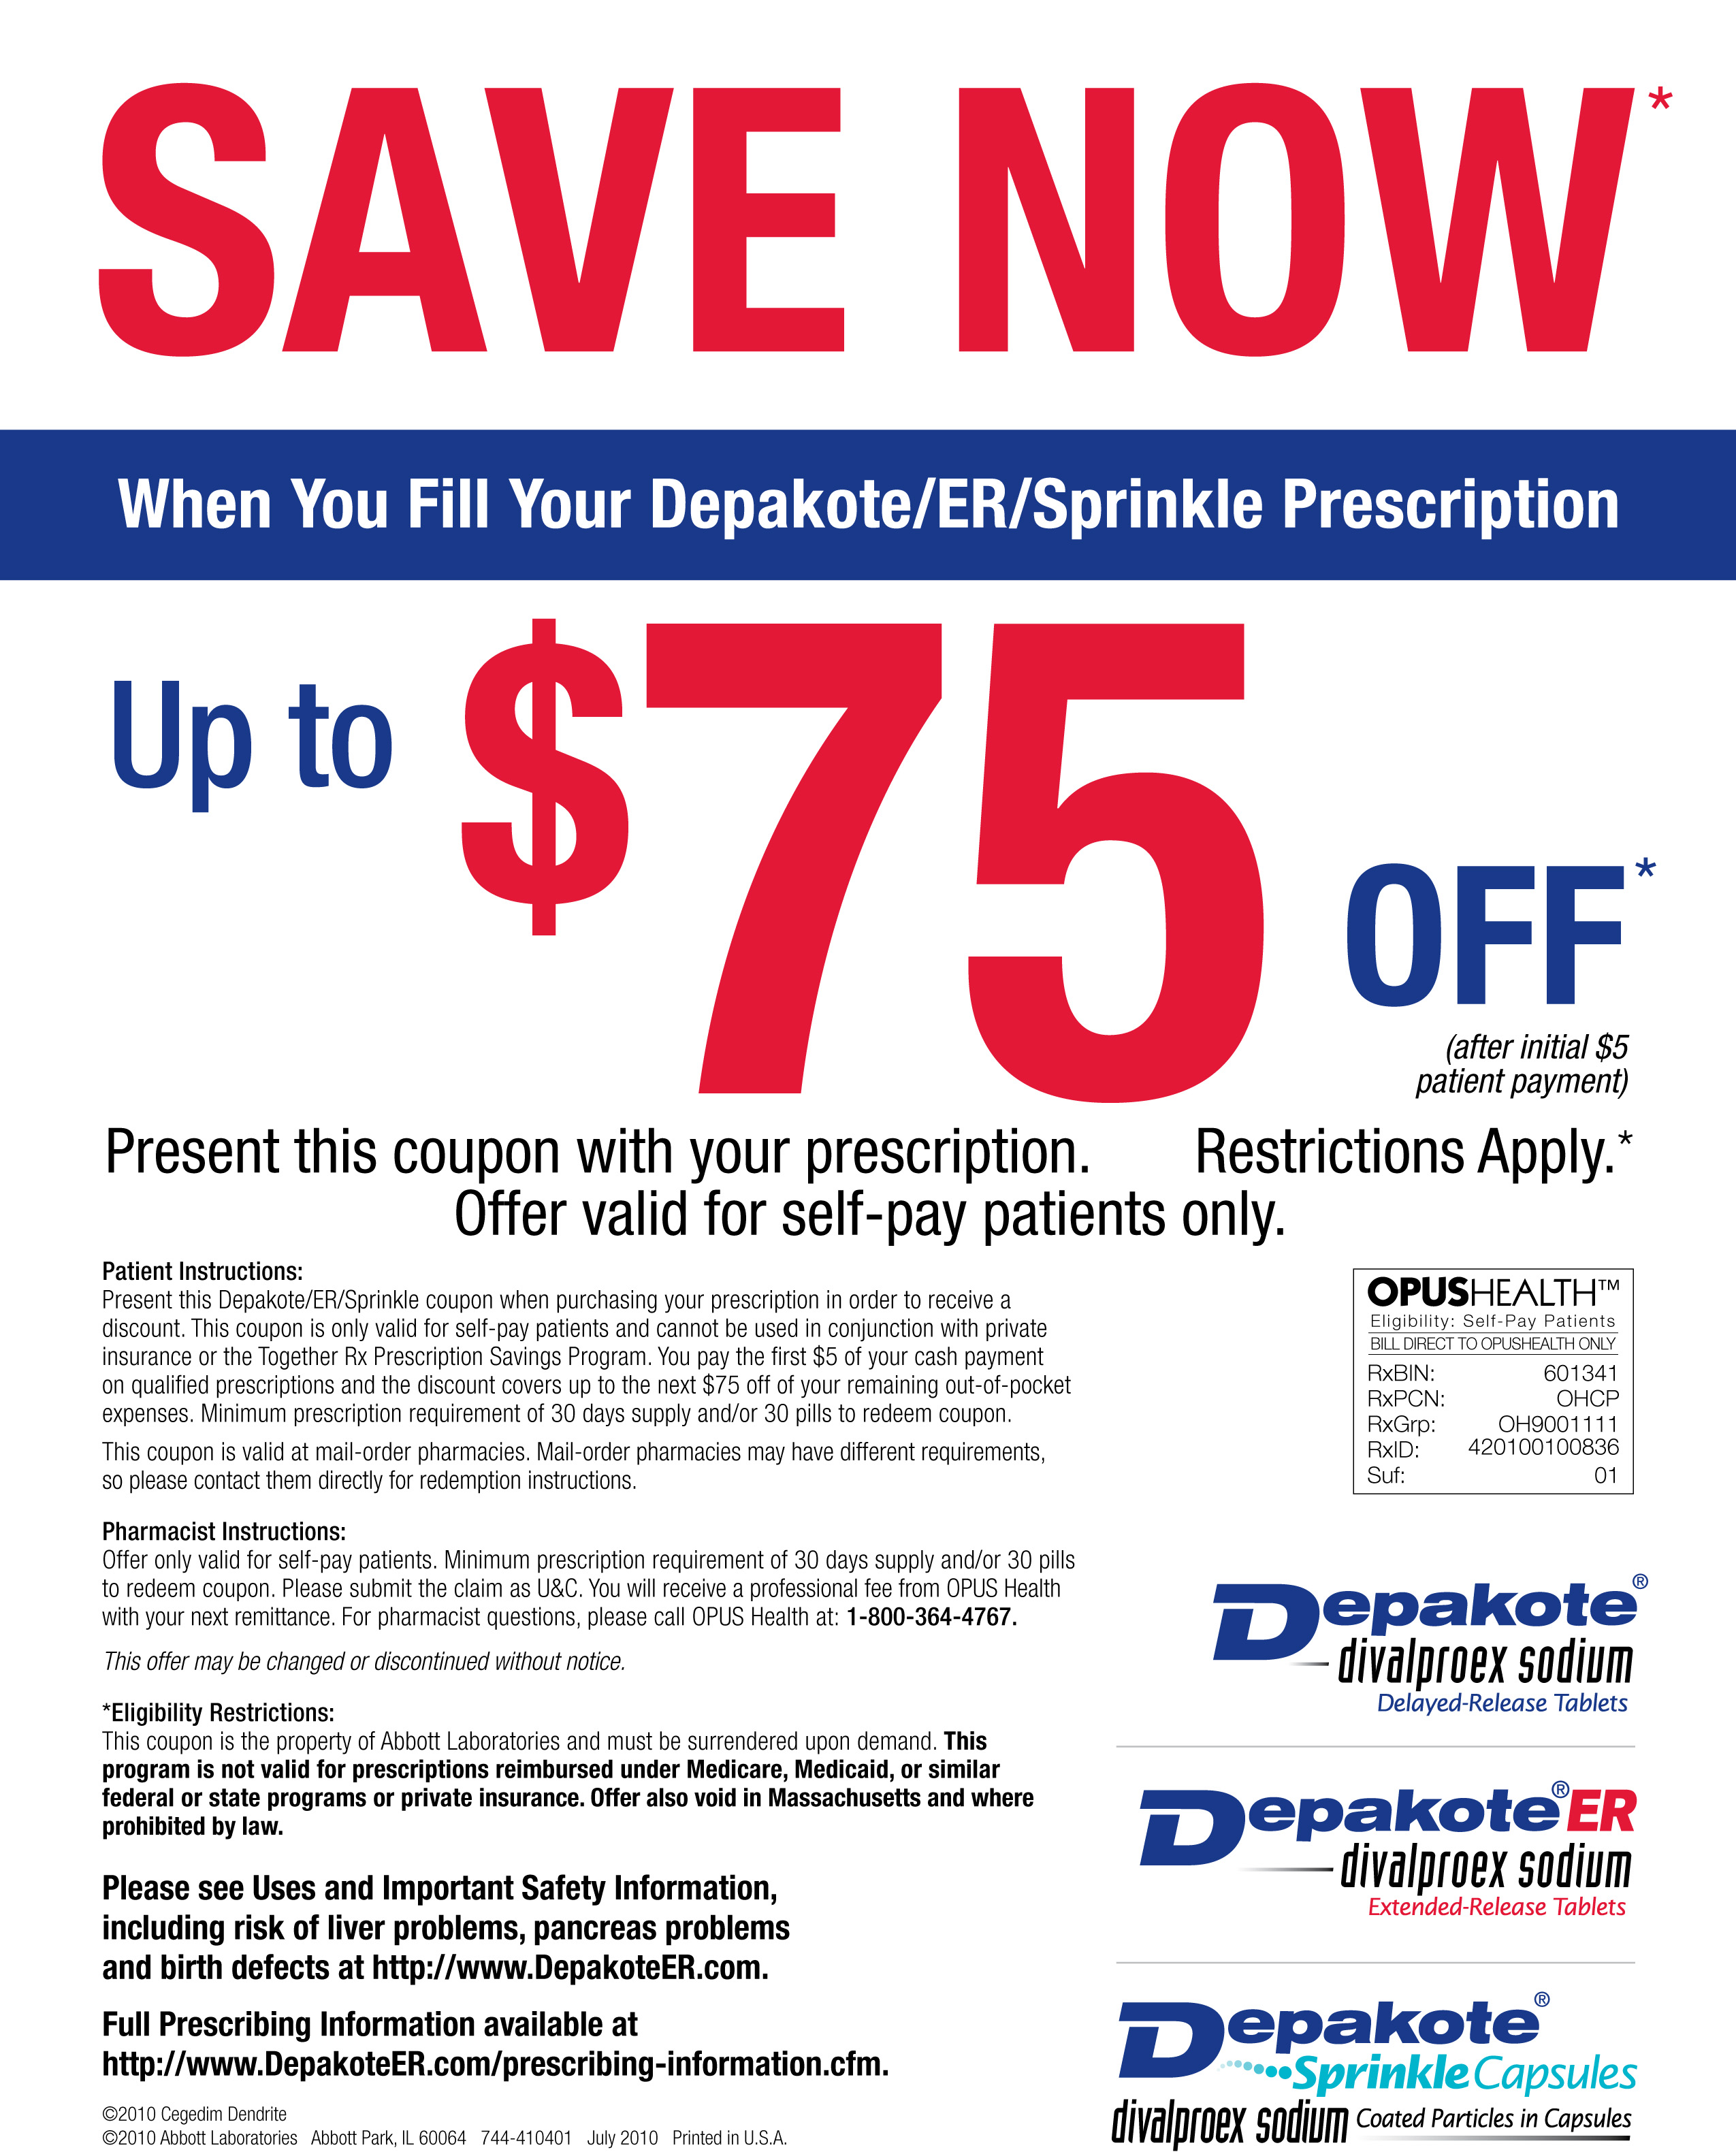 divalproex sodium er coupons